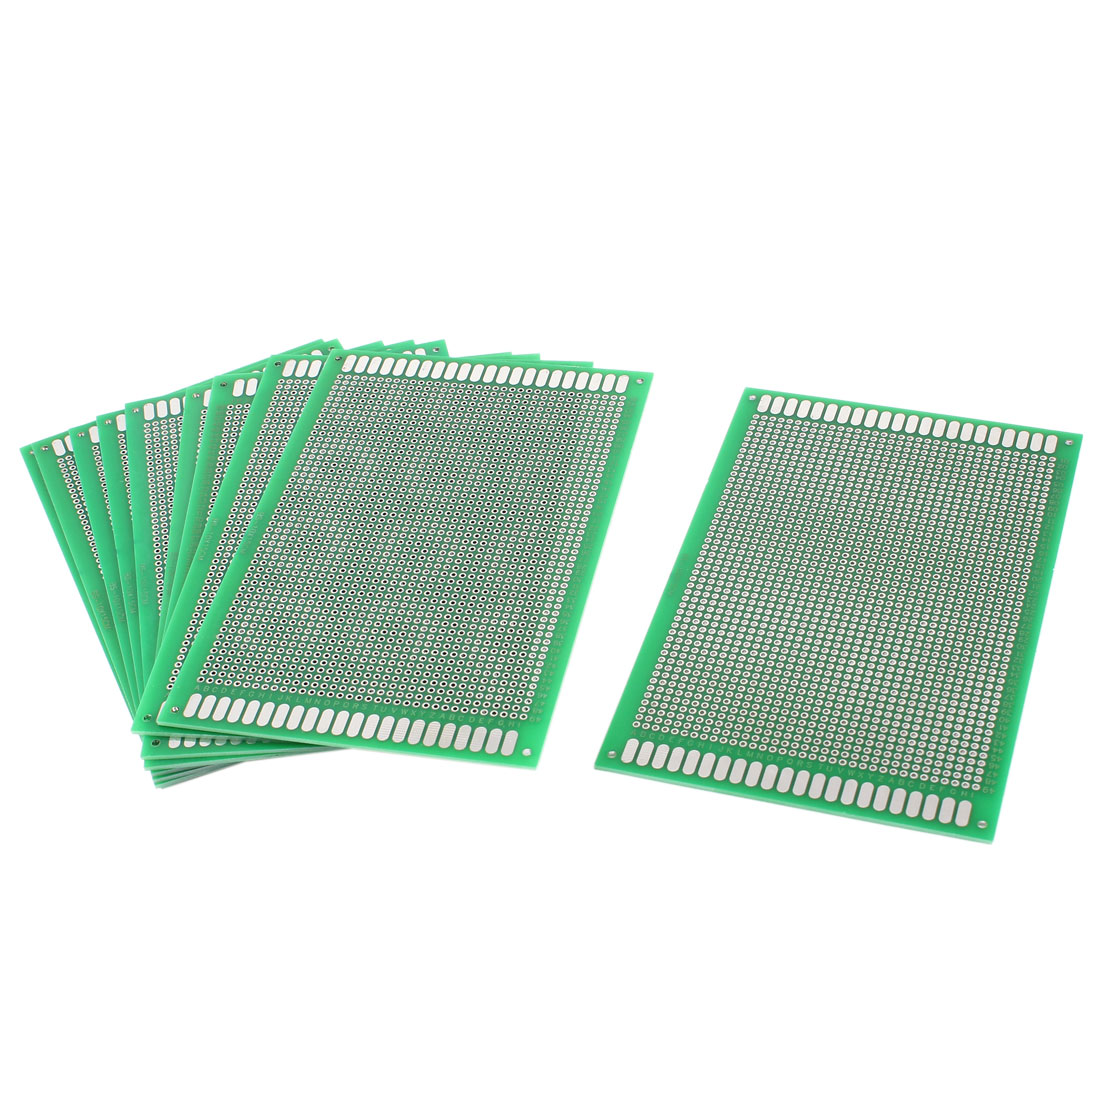 10 Pcs DIY Double Side Tinned Prototyping PCB Circuit Universal Board 10cmx15cm